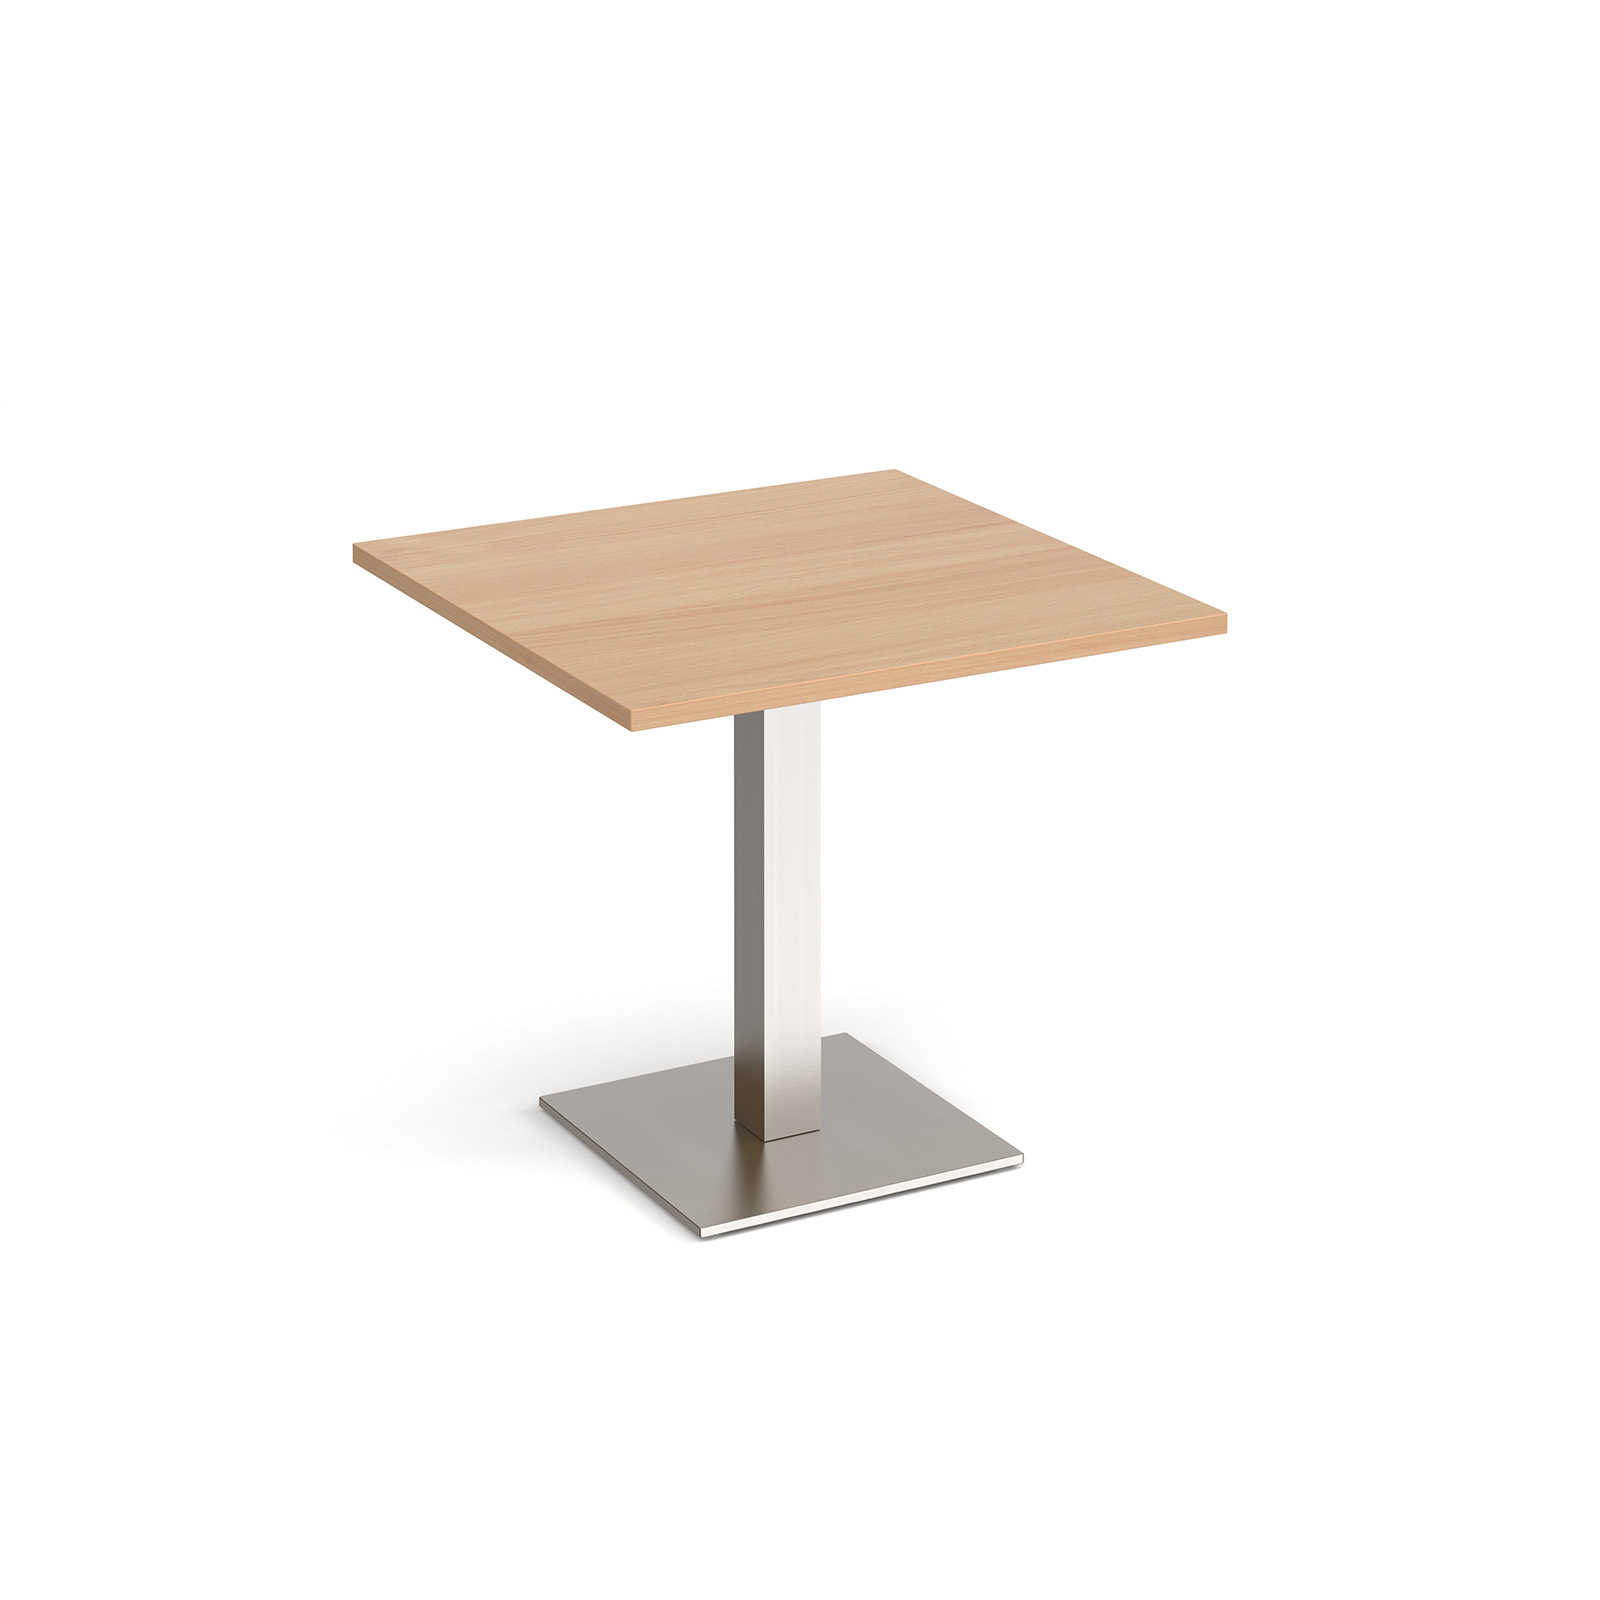 Brescia square dining table with flat square base